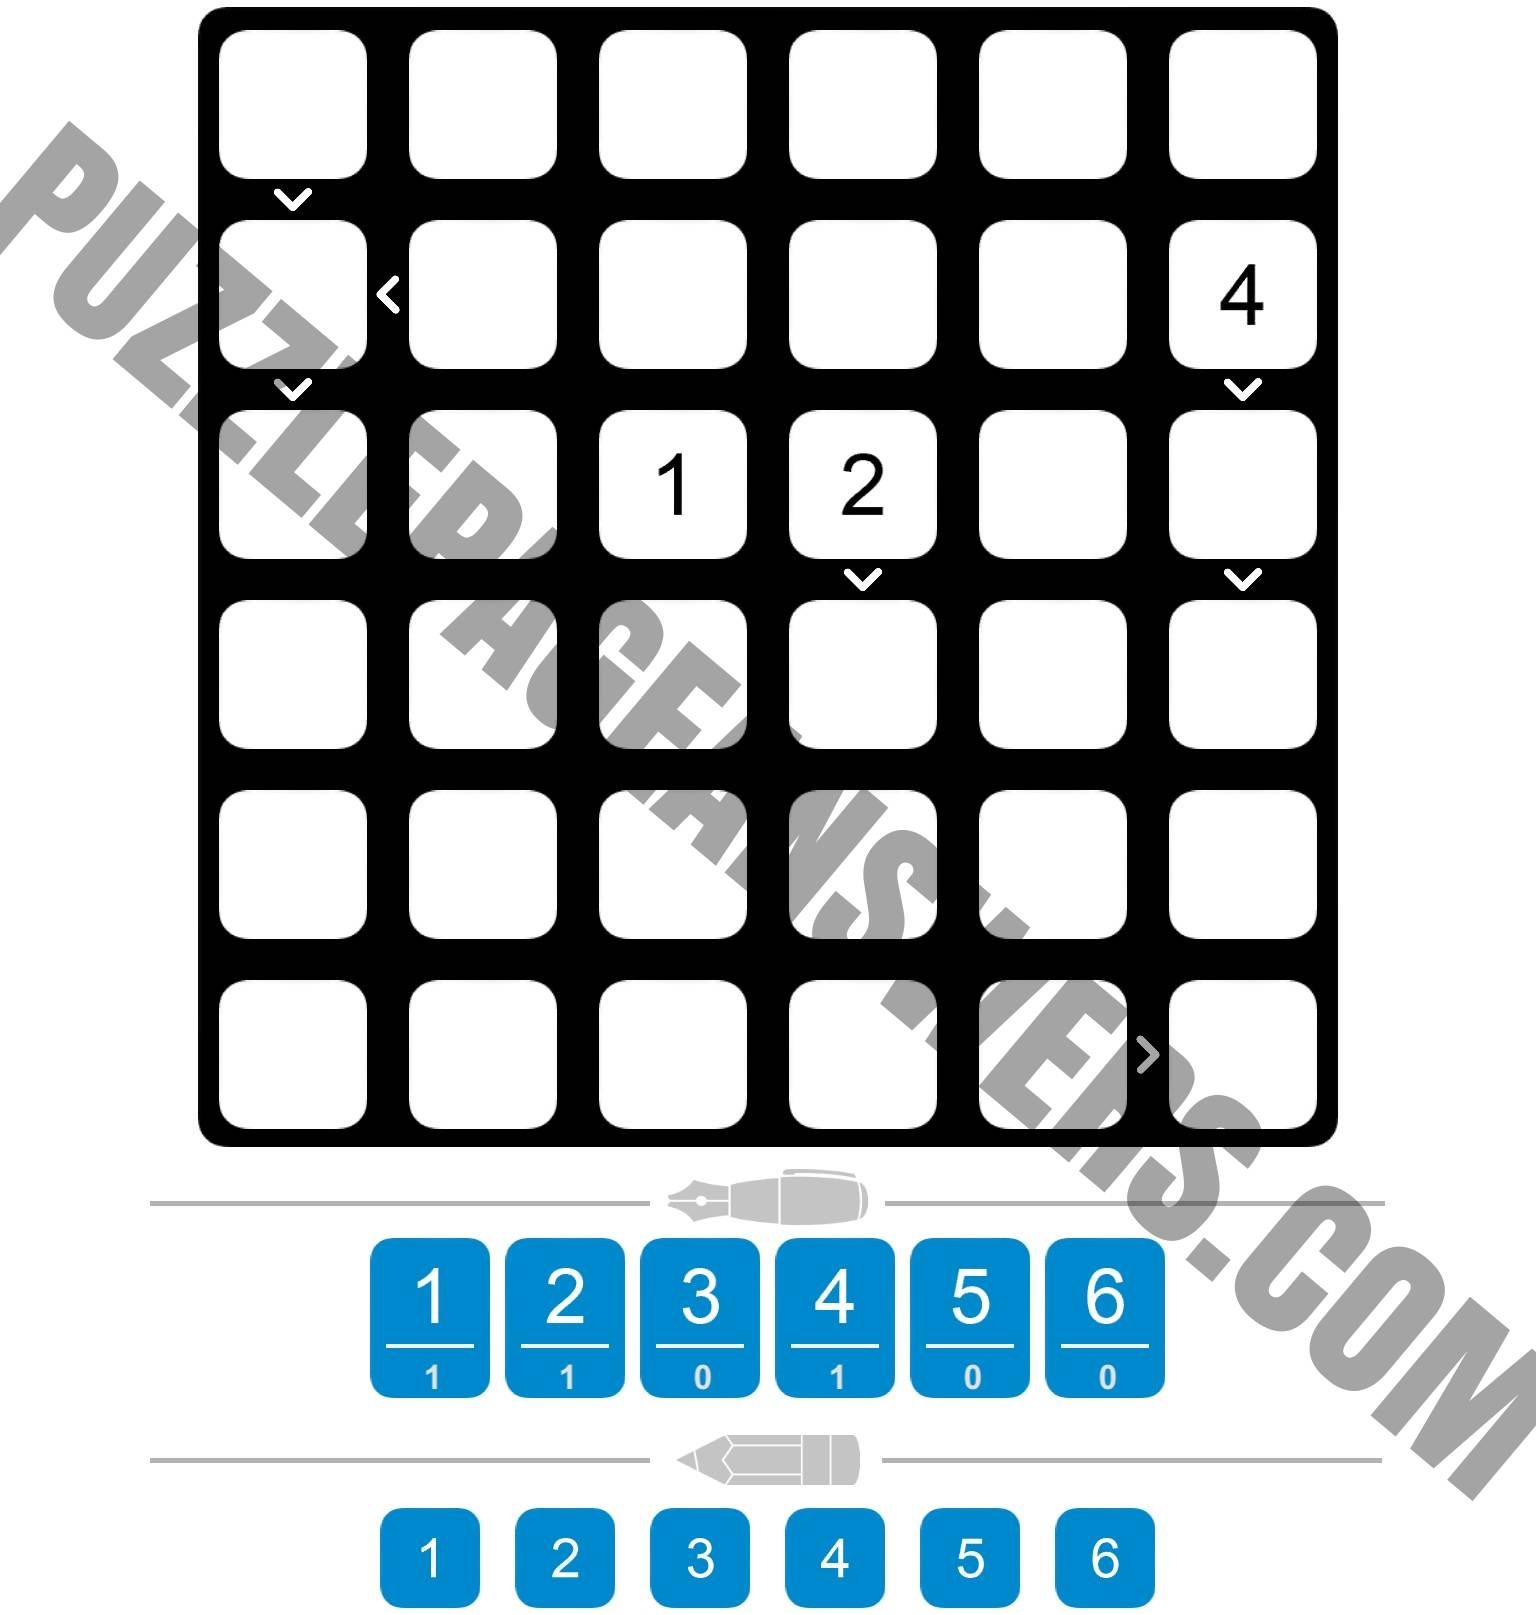 Puzzle Page Picture Cross February 16 2019 - Www imagez co